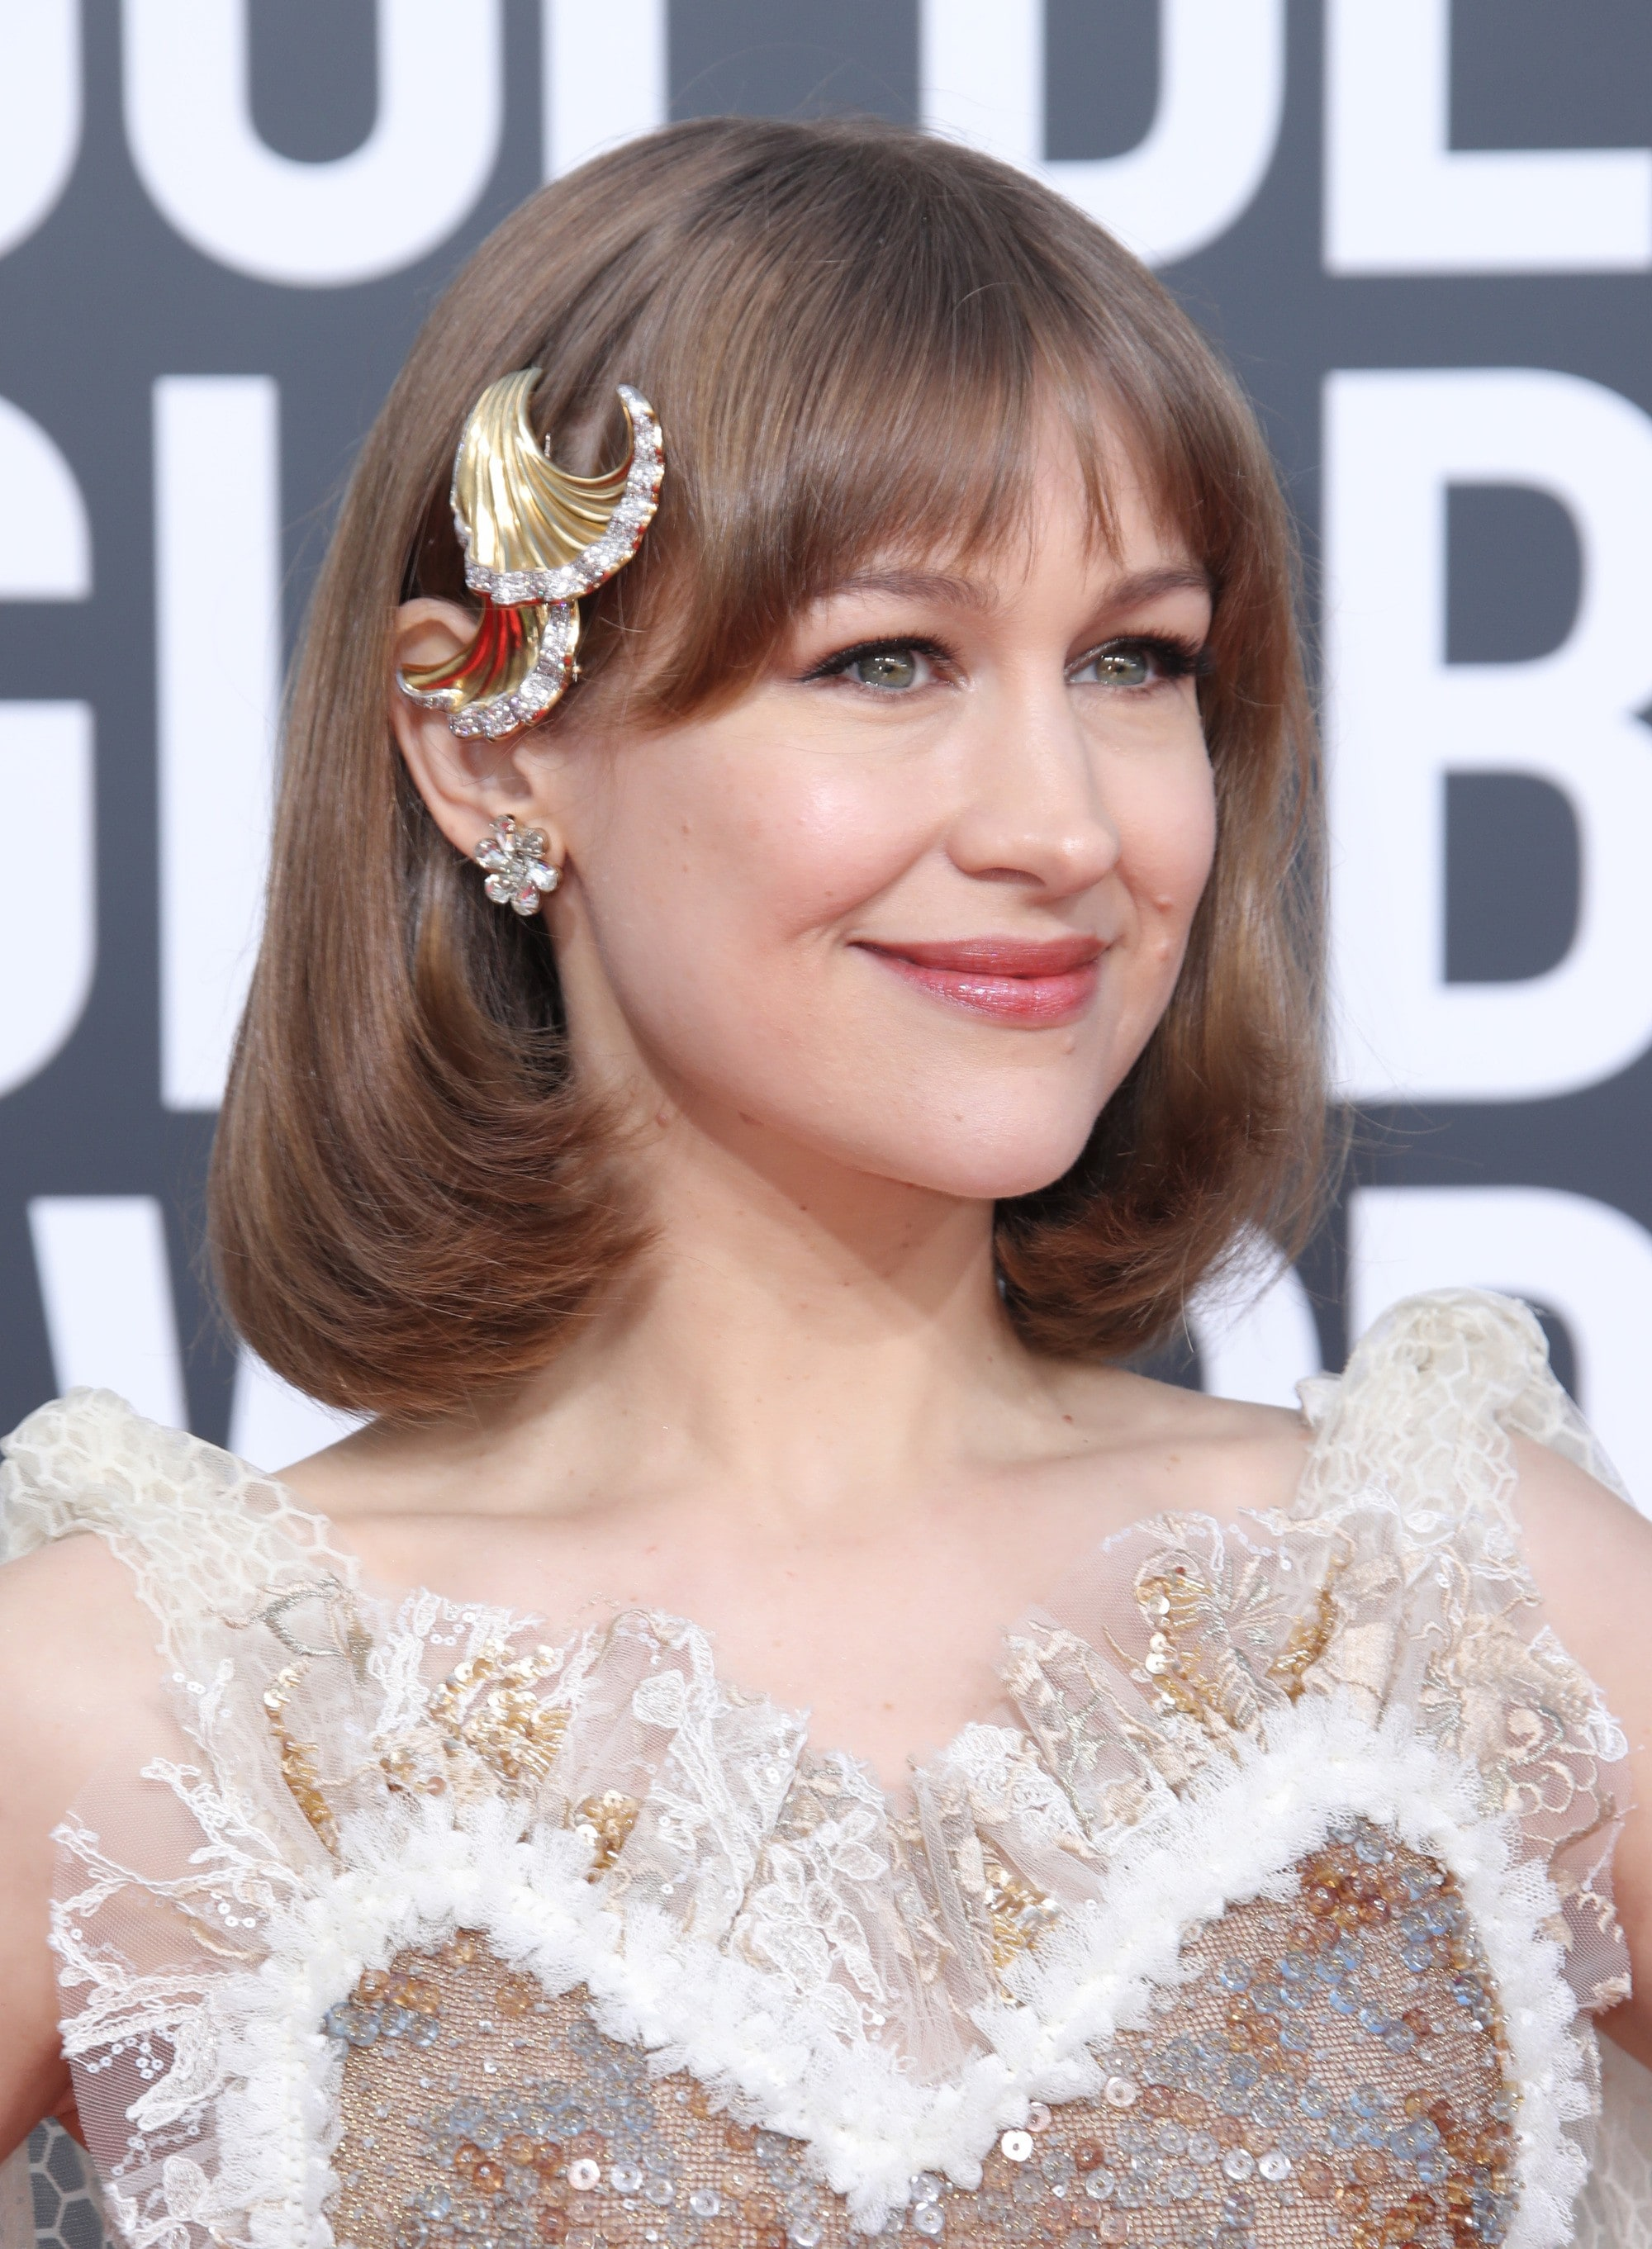 2019 Hair accessories: Joanna Newsom with a dirty blonde flipped long lob with a golden seashell hair accessory, wearing feathery dress and posing on the red carpet